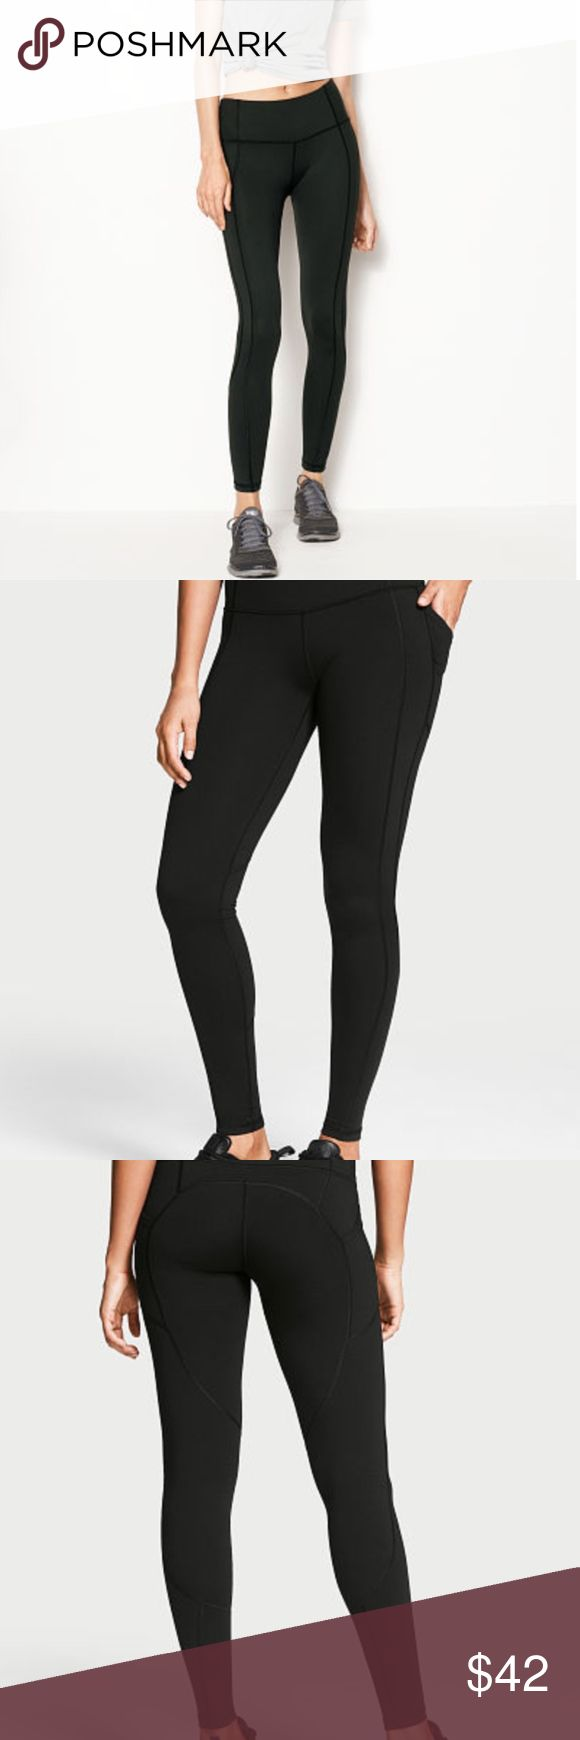 """The Knockout by Victoria Sport Pocket Tight The best gets better: the slimming, stay-put workout tight you love, now with side pockets for toting cards, keys and other on-the-go essentials. Medium rise with second-skin fit and lined, reinforced gusset Smooth seams engineered with softer threads for total comfort Waistband with mesh lining slims & stays in place throughout workout Hidden drawstring waist; large waistband pocket holds iPhone® 6 Side pockets on outer thighs 28"""" inseam Body-Wick…"""